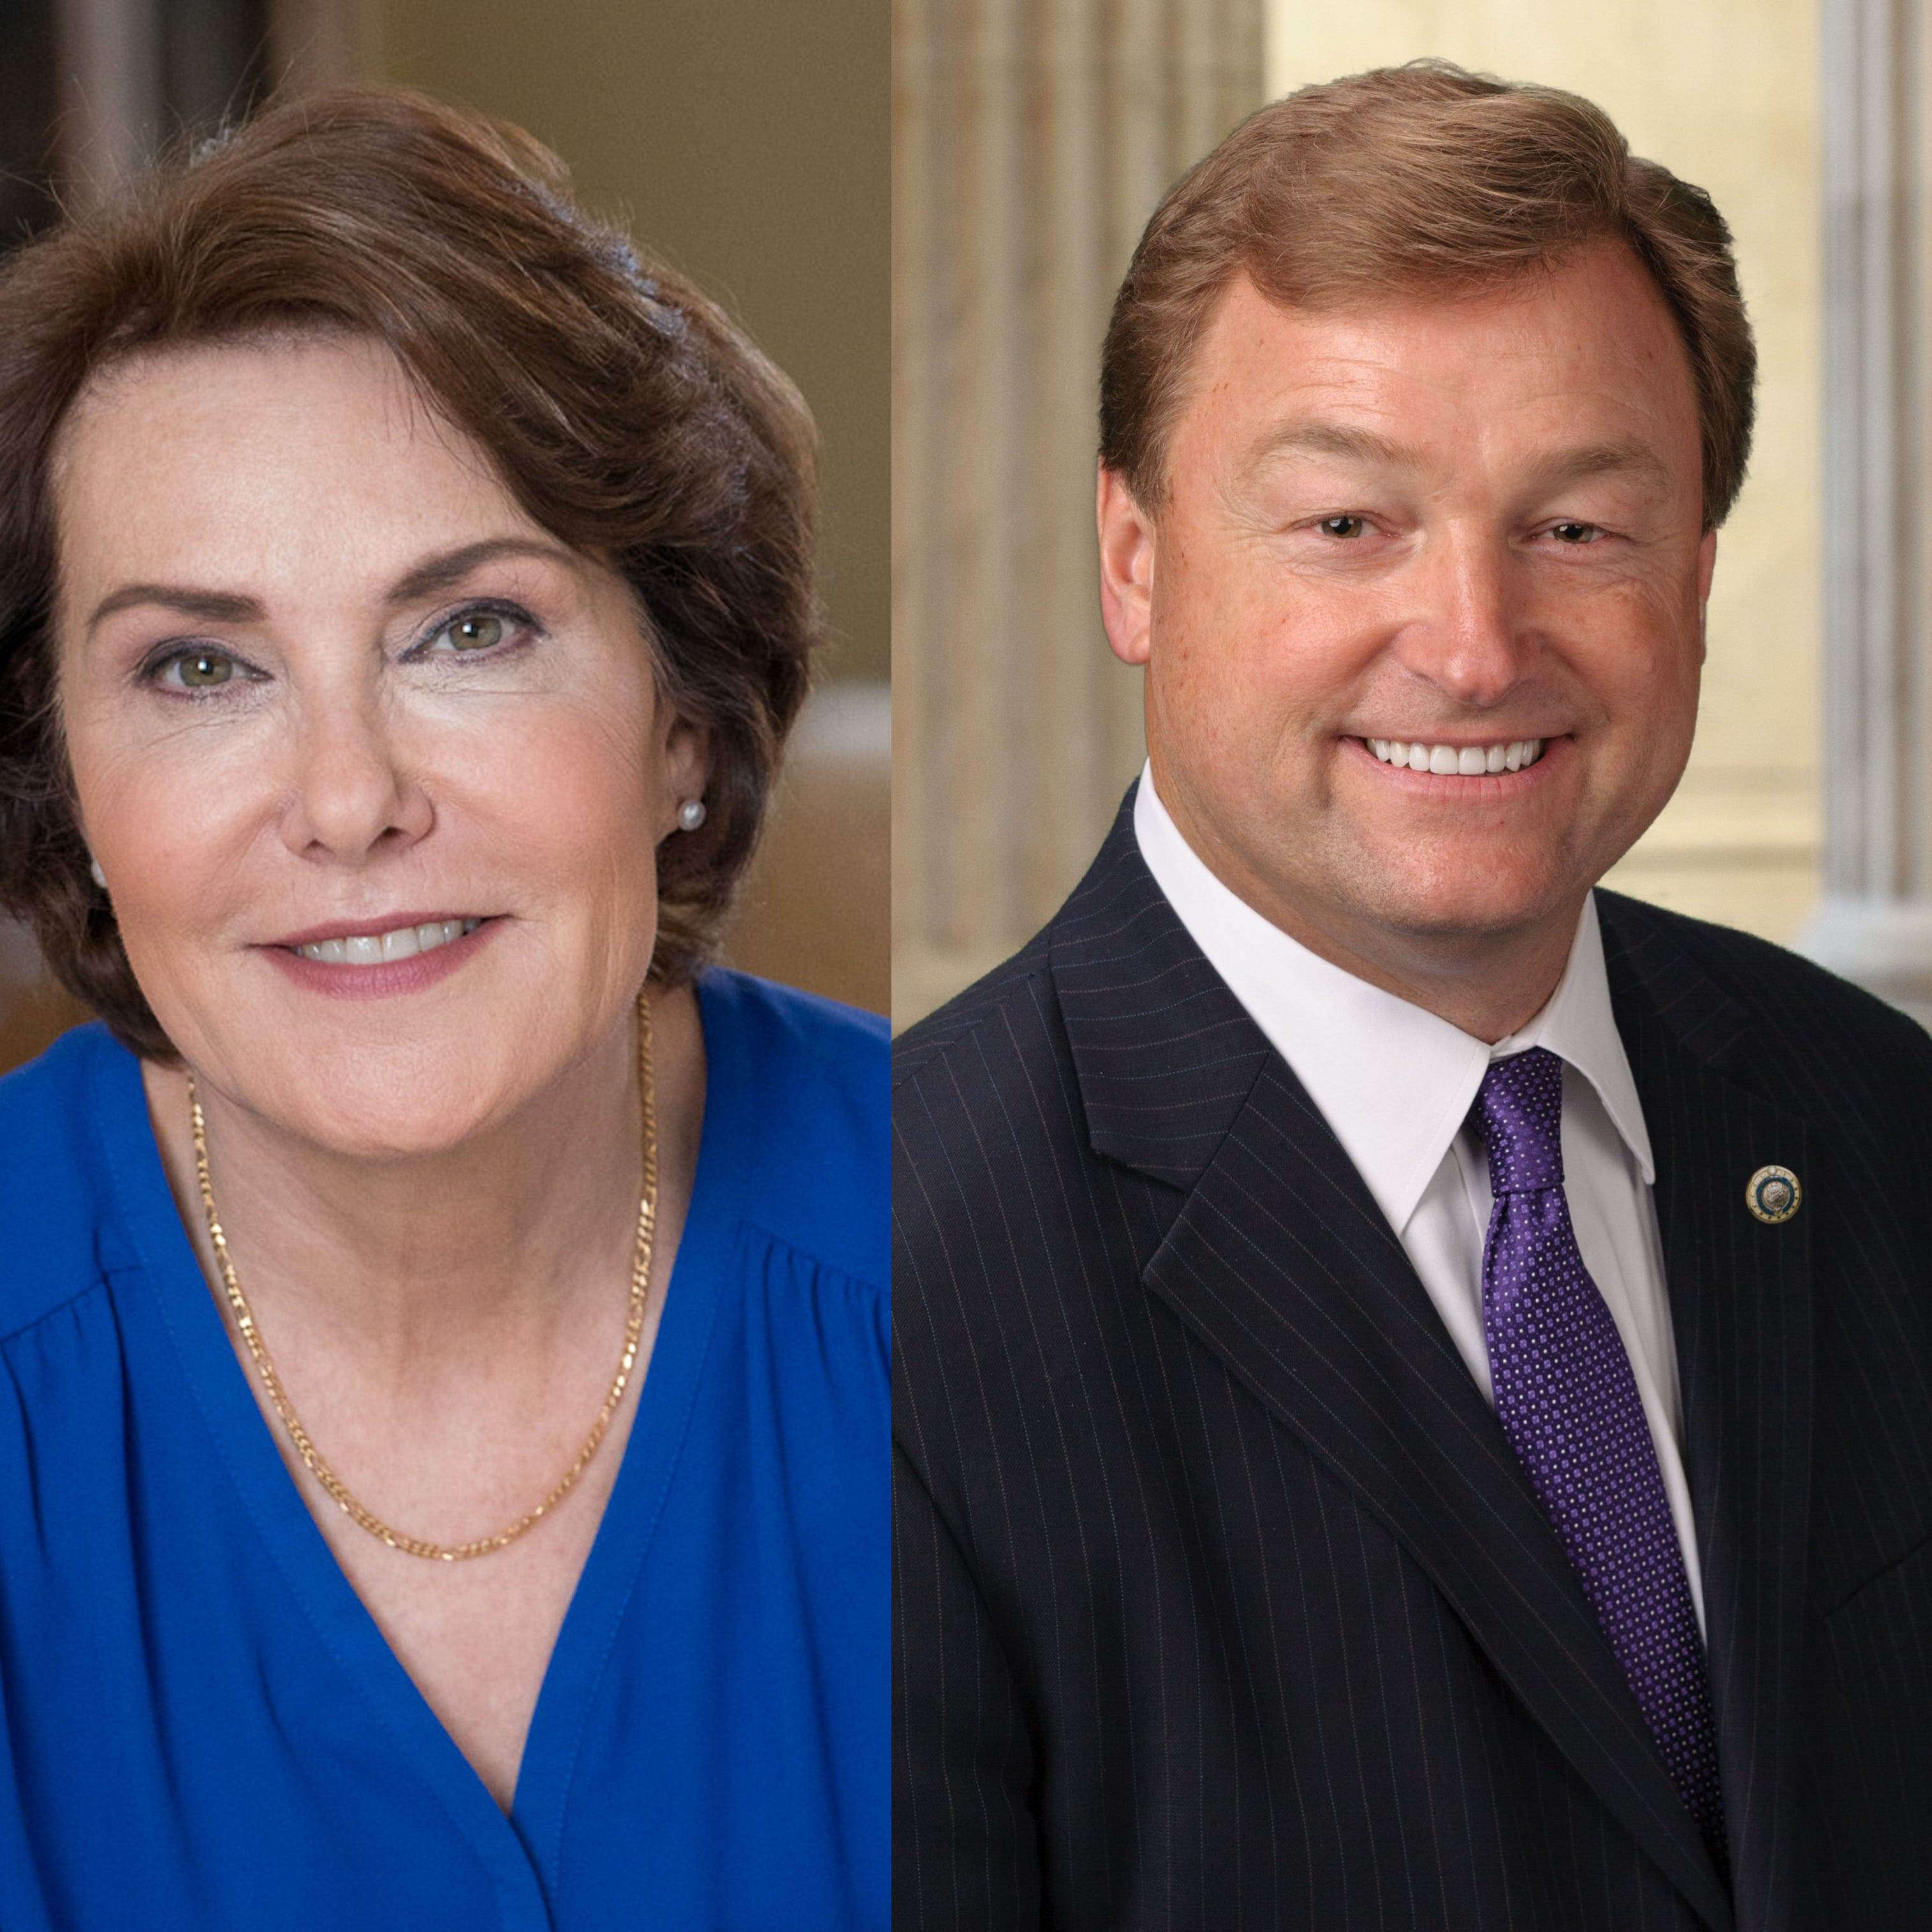 Here's how to watch tonight's debate between Sen. Dean Heller and Rep. Jacky Rosen